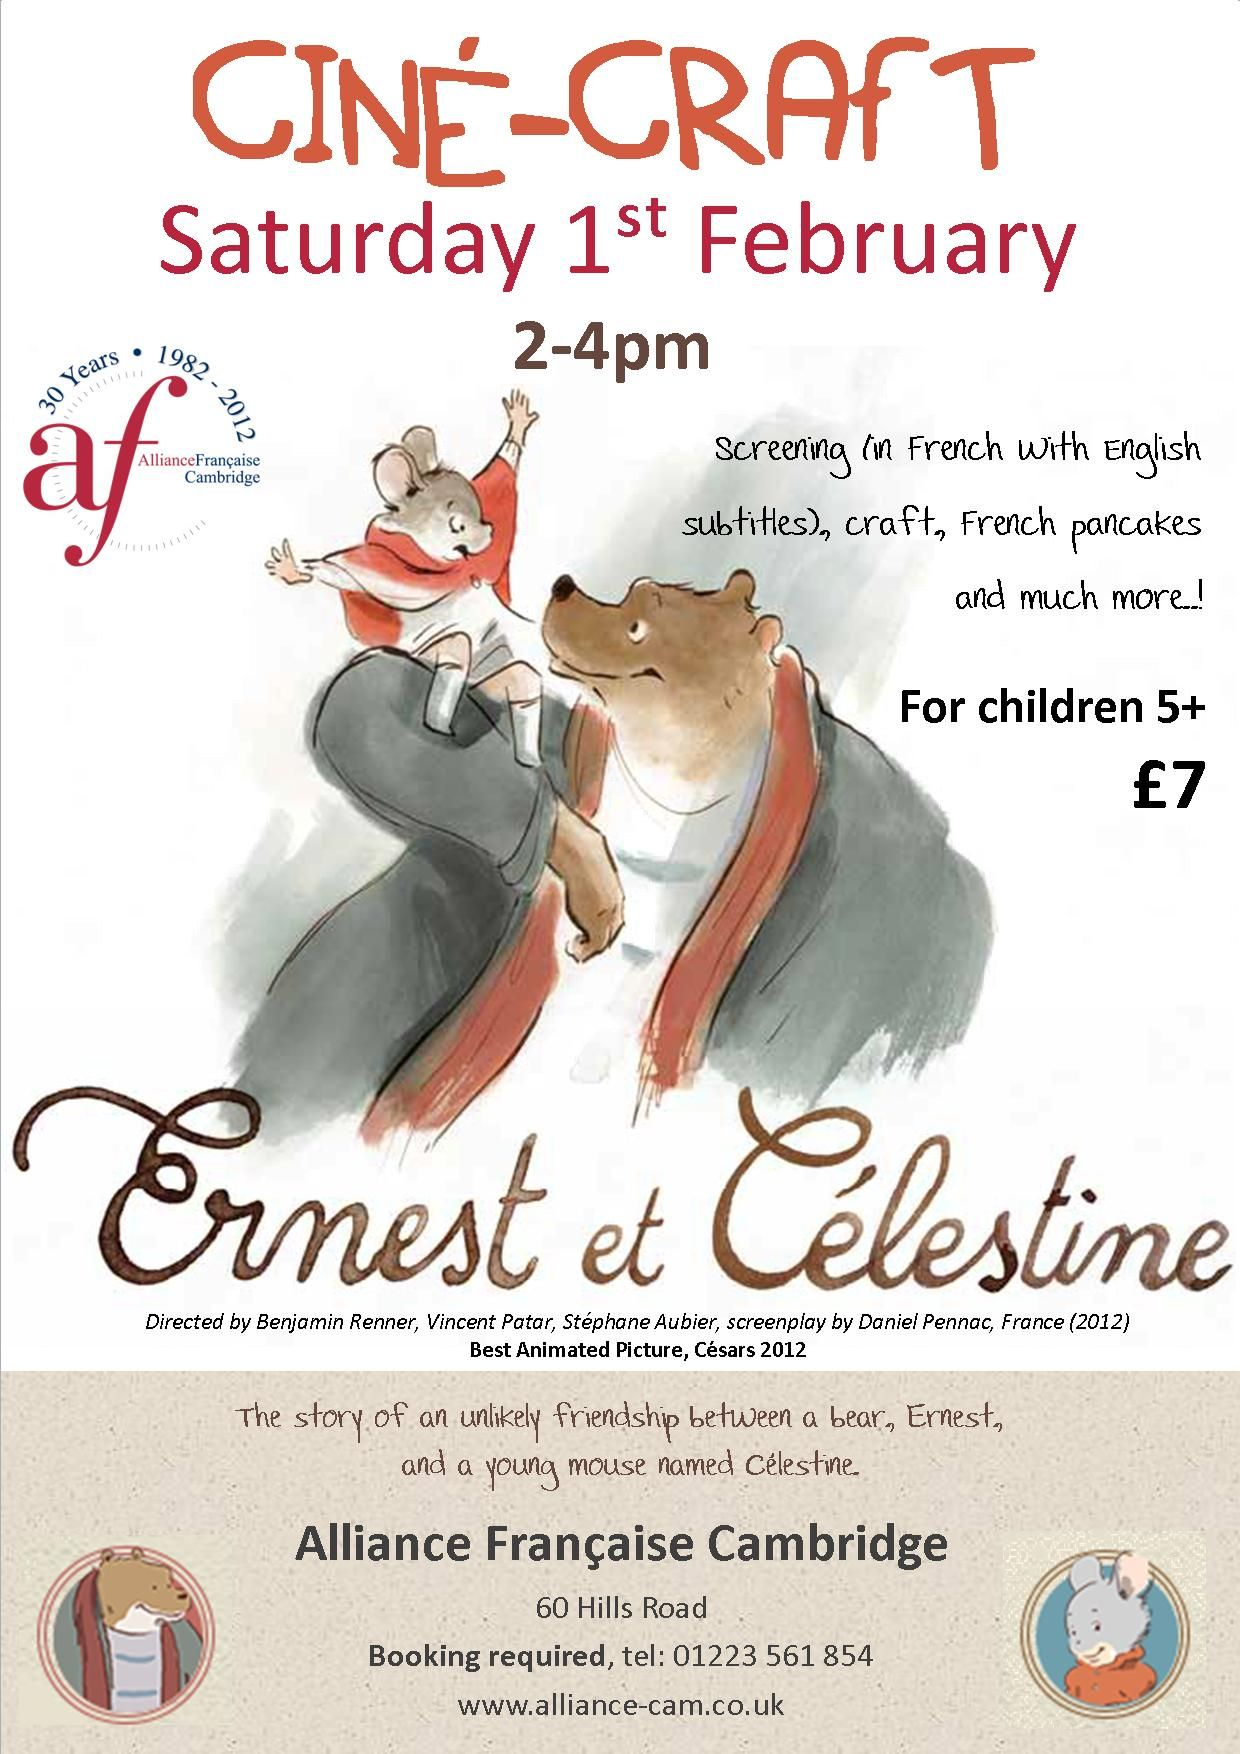 Ernest Celestine Cine Crafts At L Alliance Francaise The Screening In French With English Subtitles Will Be Ernest And Celestine Celestine French Pancakes